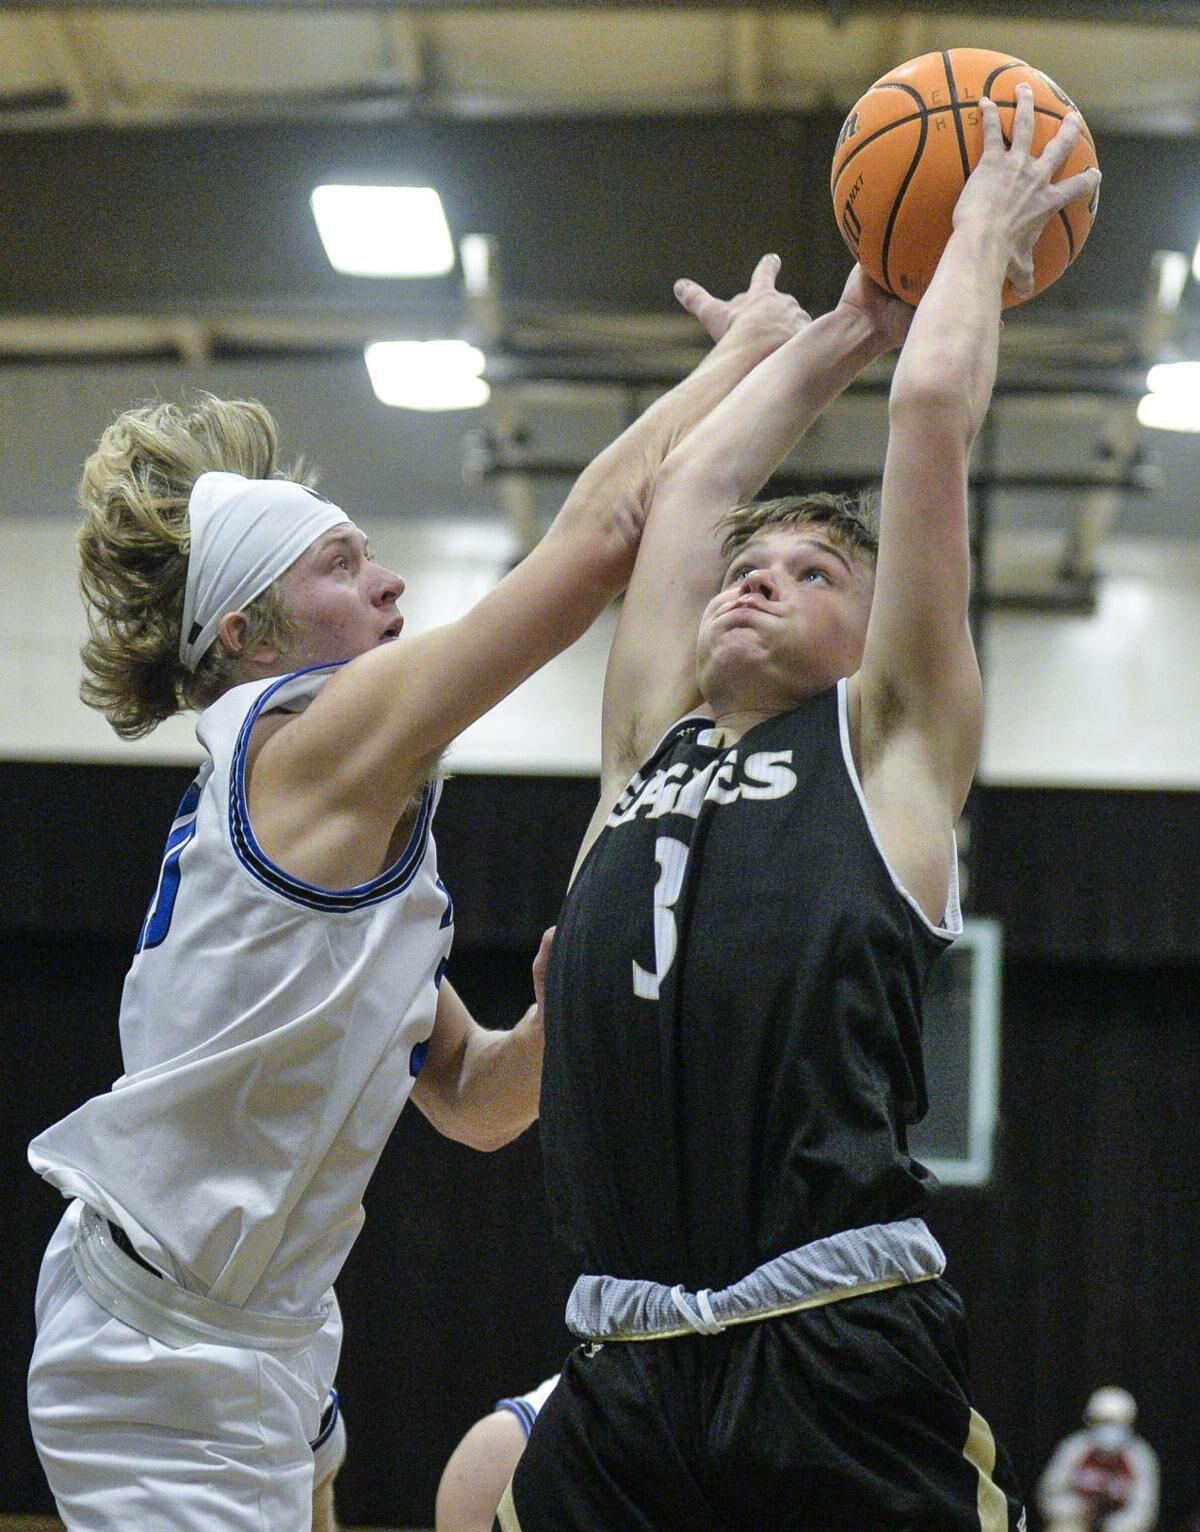 Davenport leads East Lawrence to stunning upset over Hatton